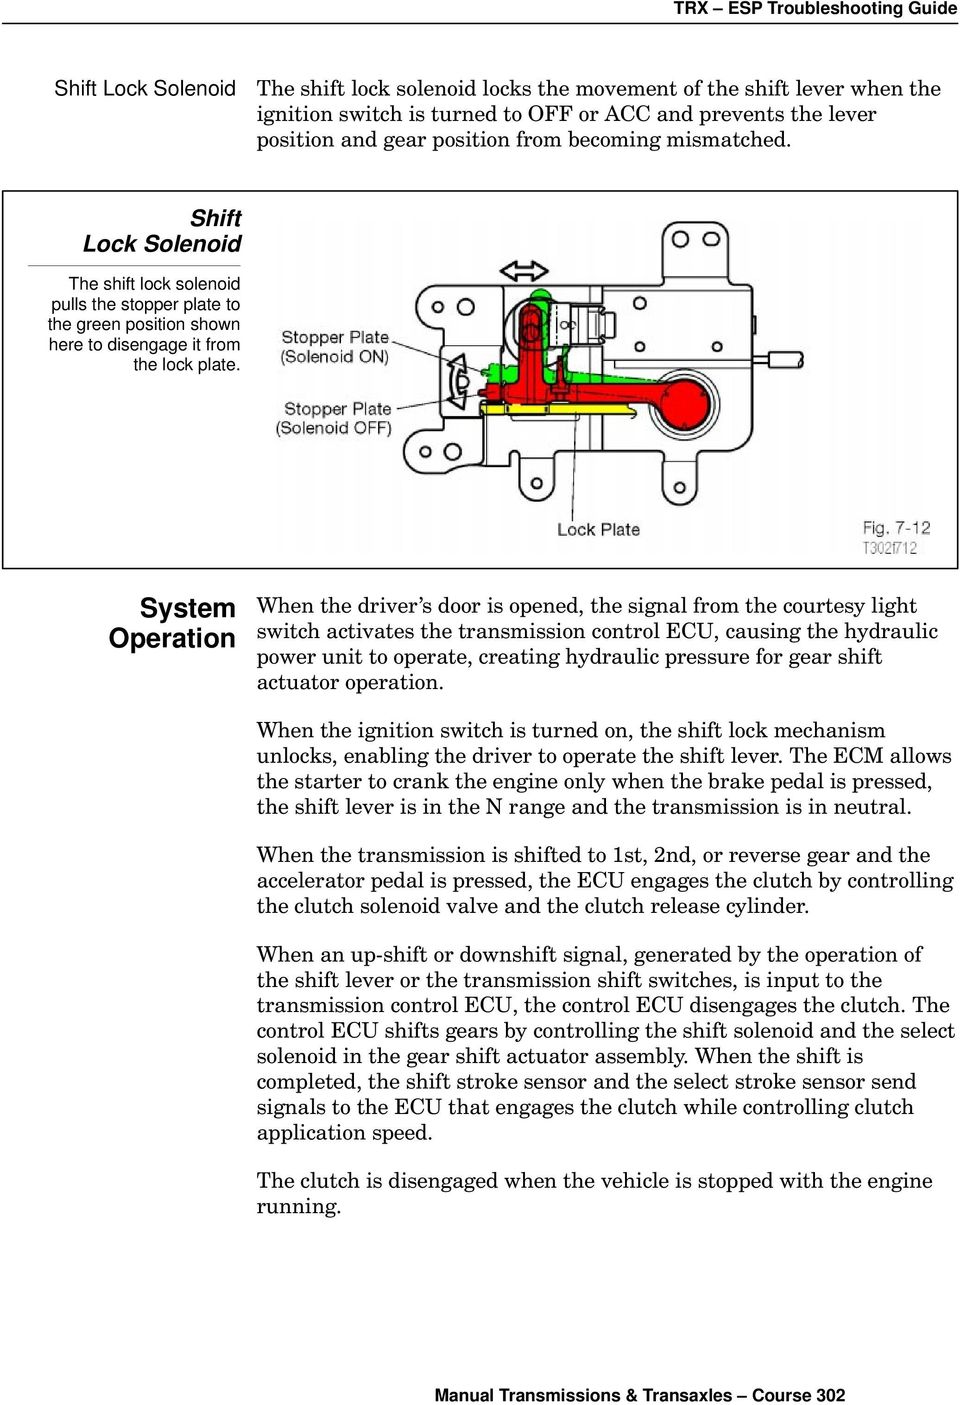 Sequential Manual Transmission Pdf 2002 Mitsubishi Engine Diagram Clutch System Operation When The Driver S Door Is Opened Signal From Courtesy Light